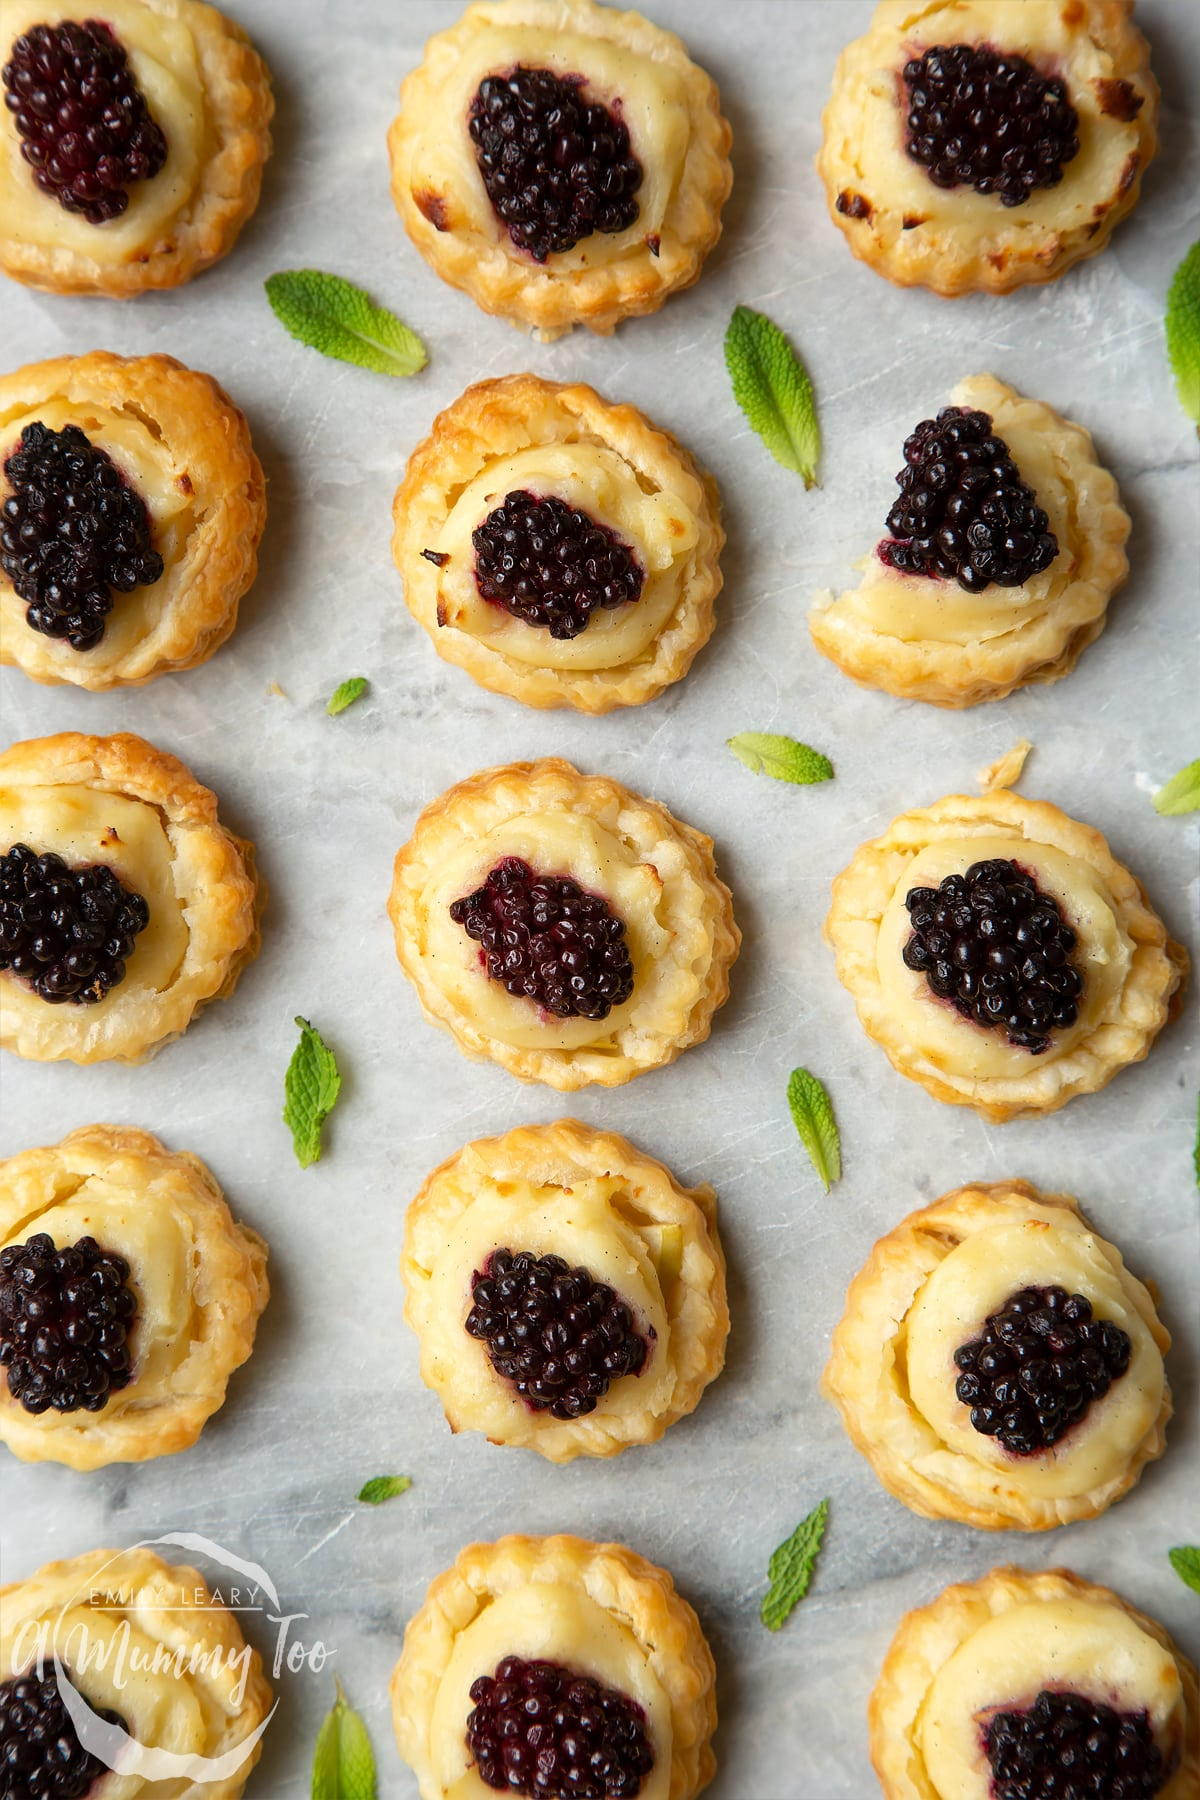 16 blackberry tartlets comprised of a small puff pastry disc topped with sliced apple, pastry cream and a blackberry sit on the marble board with tiny mint leaves scattered around them.